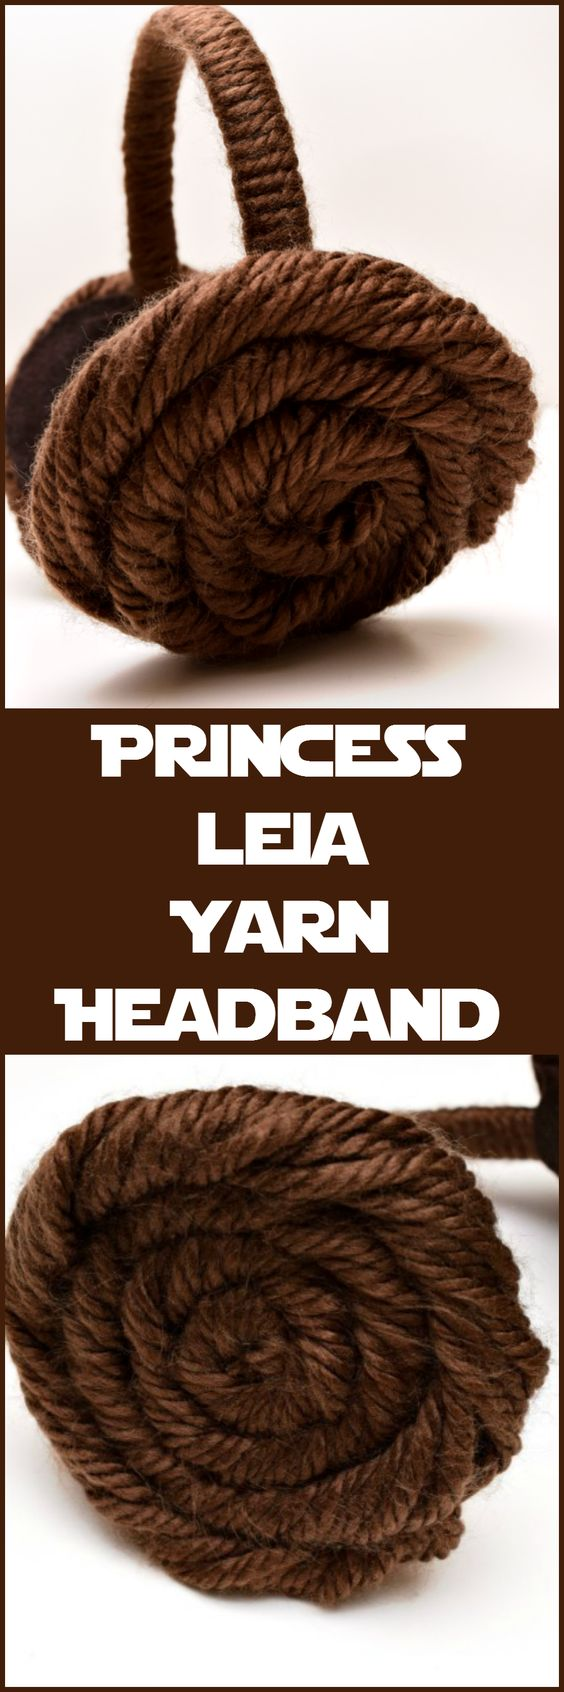 Princess Leia Yarn Headband.